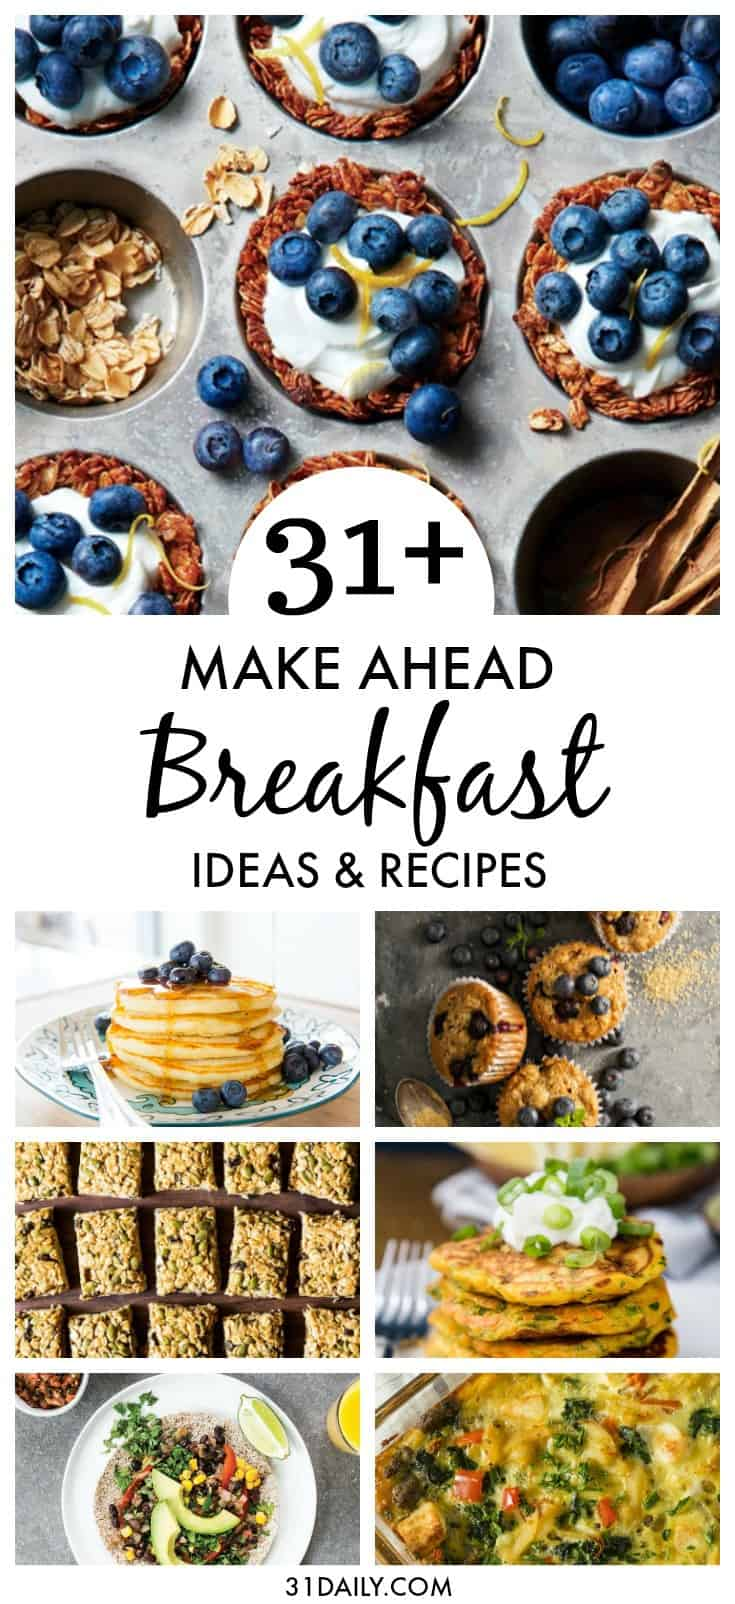 31+ Incredible Make Ahead Breakfast Recipes and Ideas | 31Daily.com